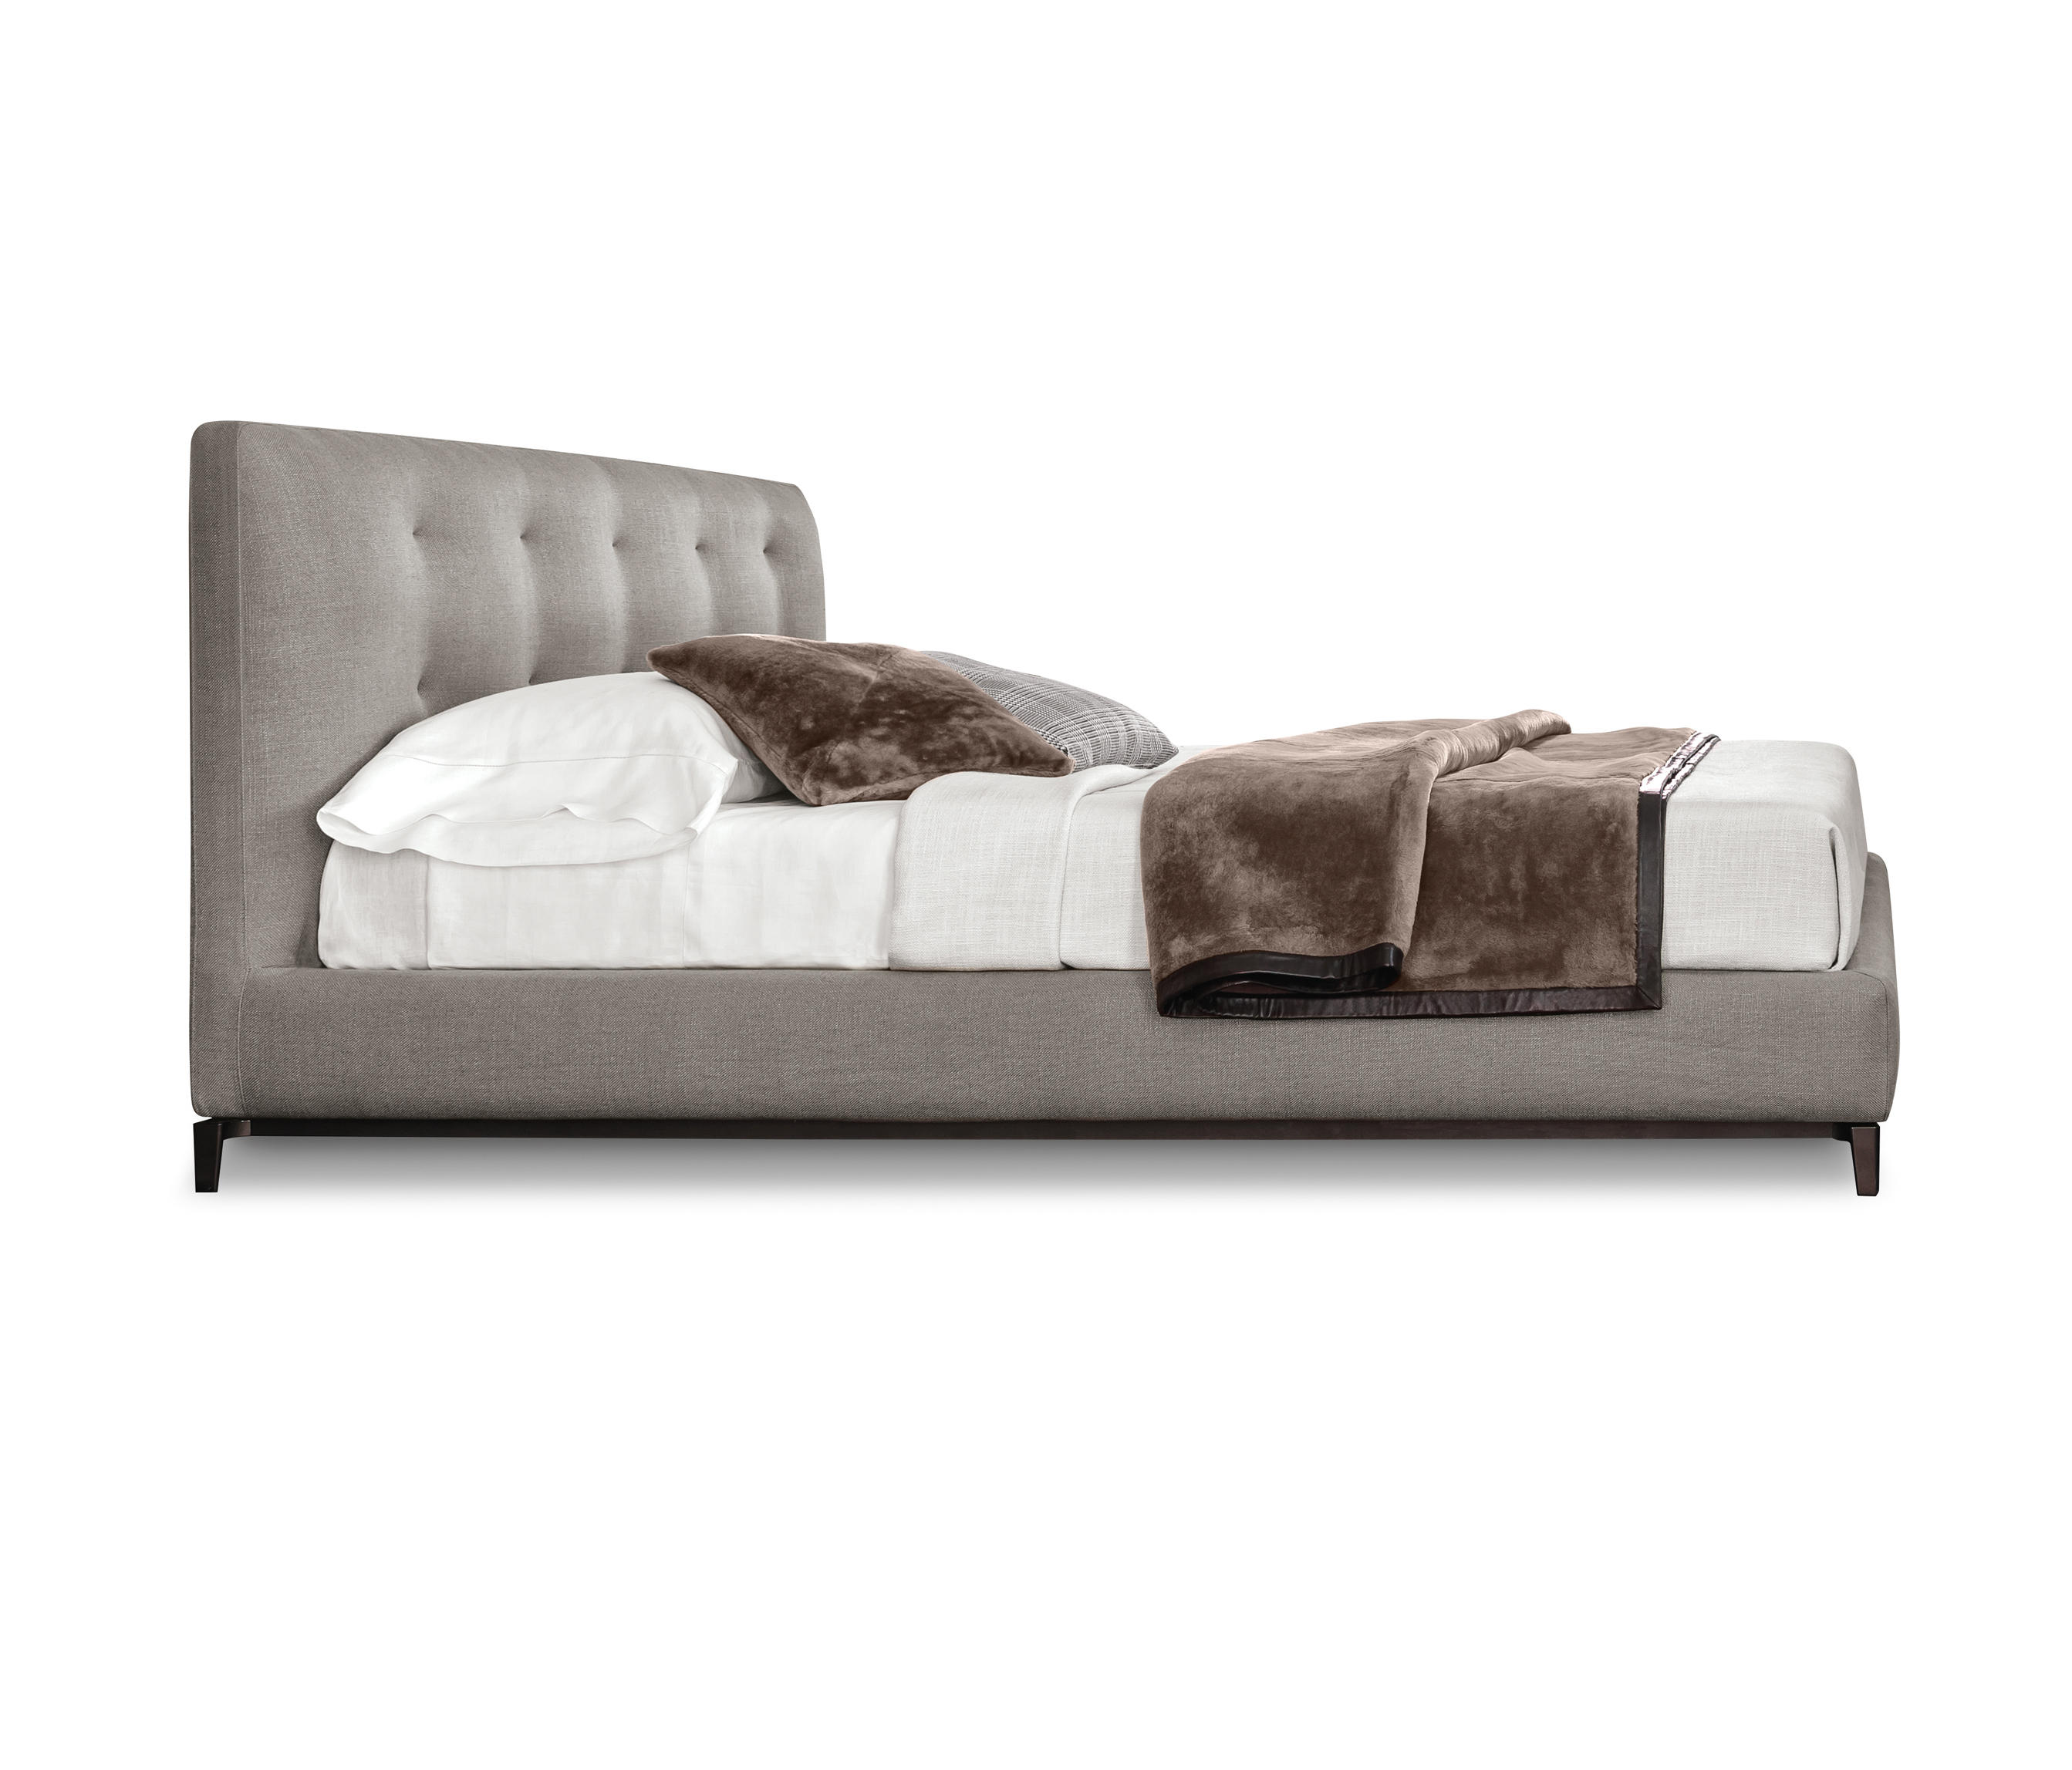 Dwg letti letti degenza with dwg letti dwg letto with - Letto singolo dwg ...